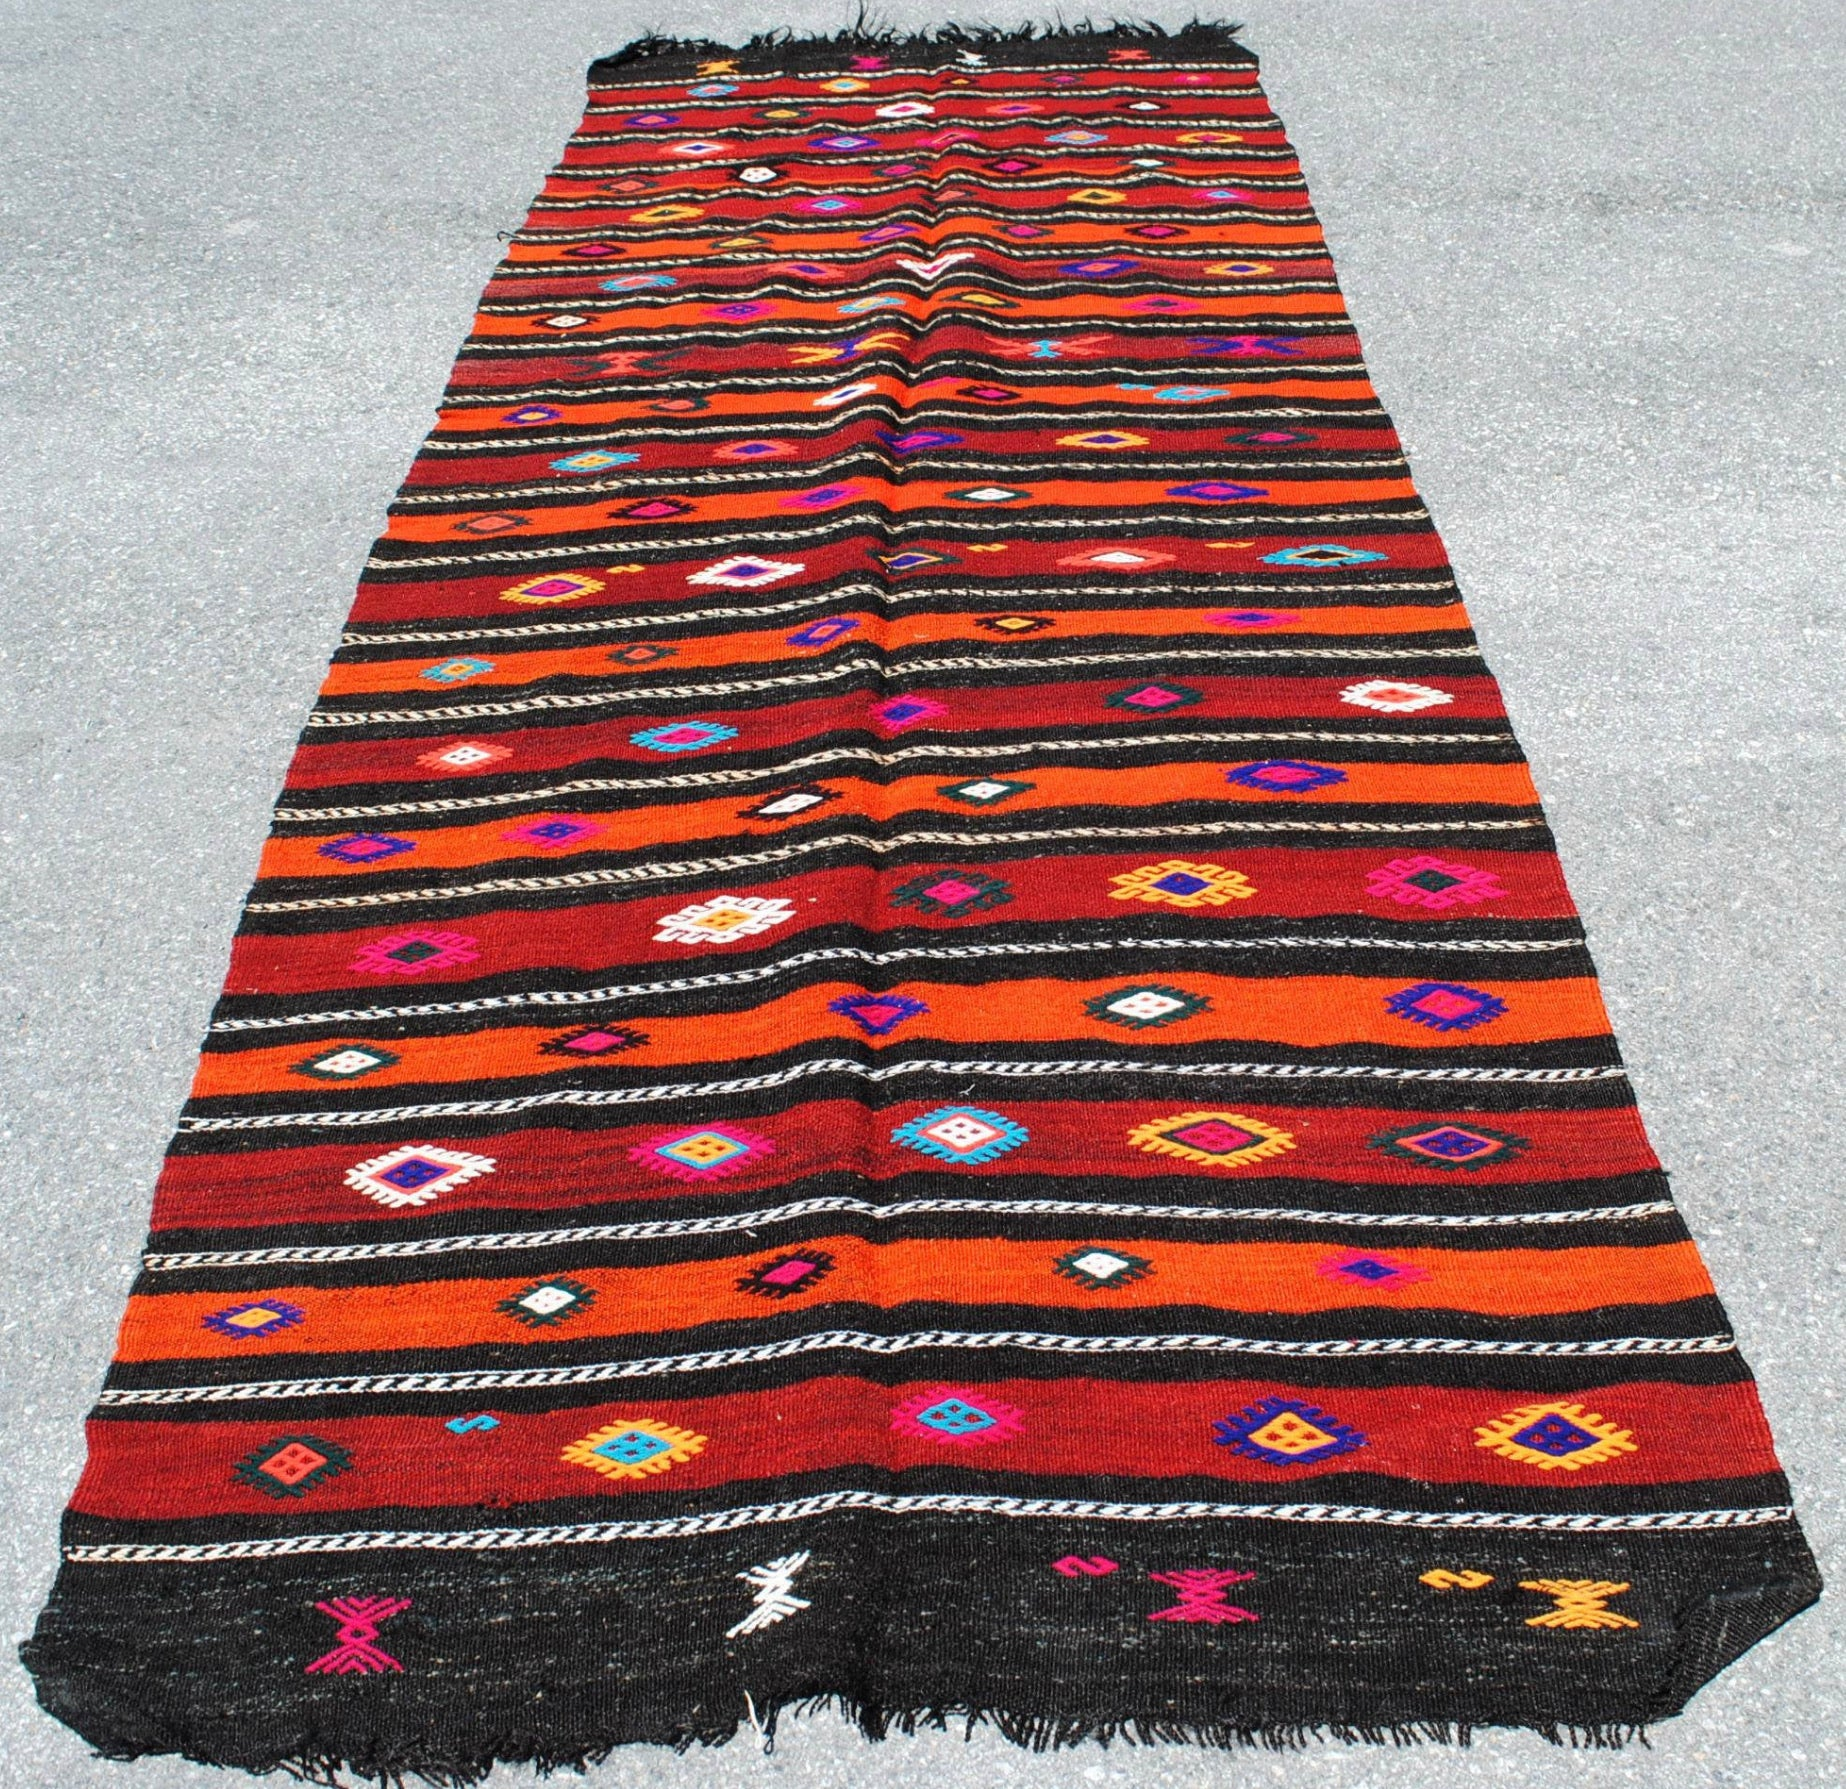 TURKISH KILIM RUG| Kadri| Vintage | Runner| Oushak Handwoven |One of a Kind| Boho Kilim|11' x 4'